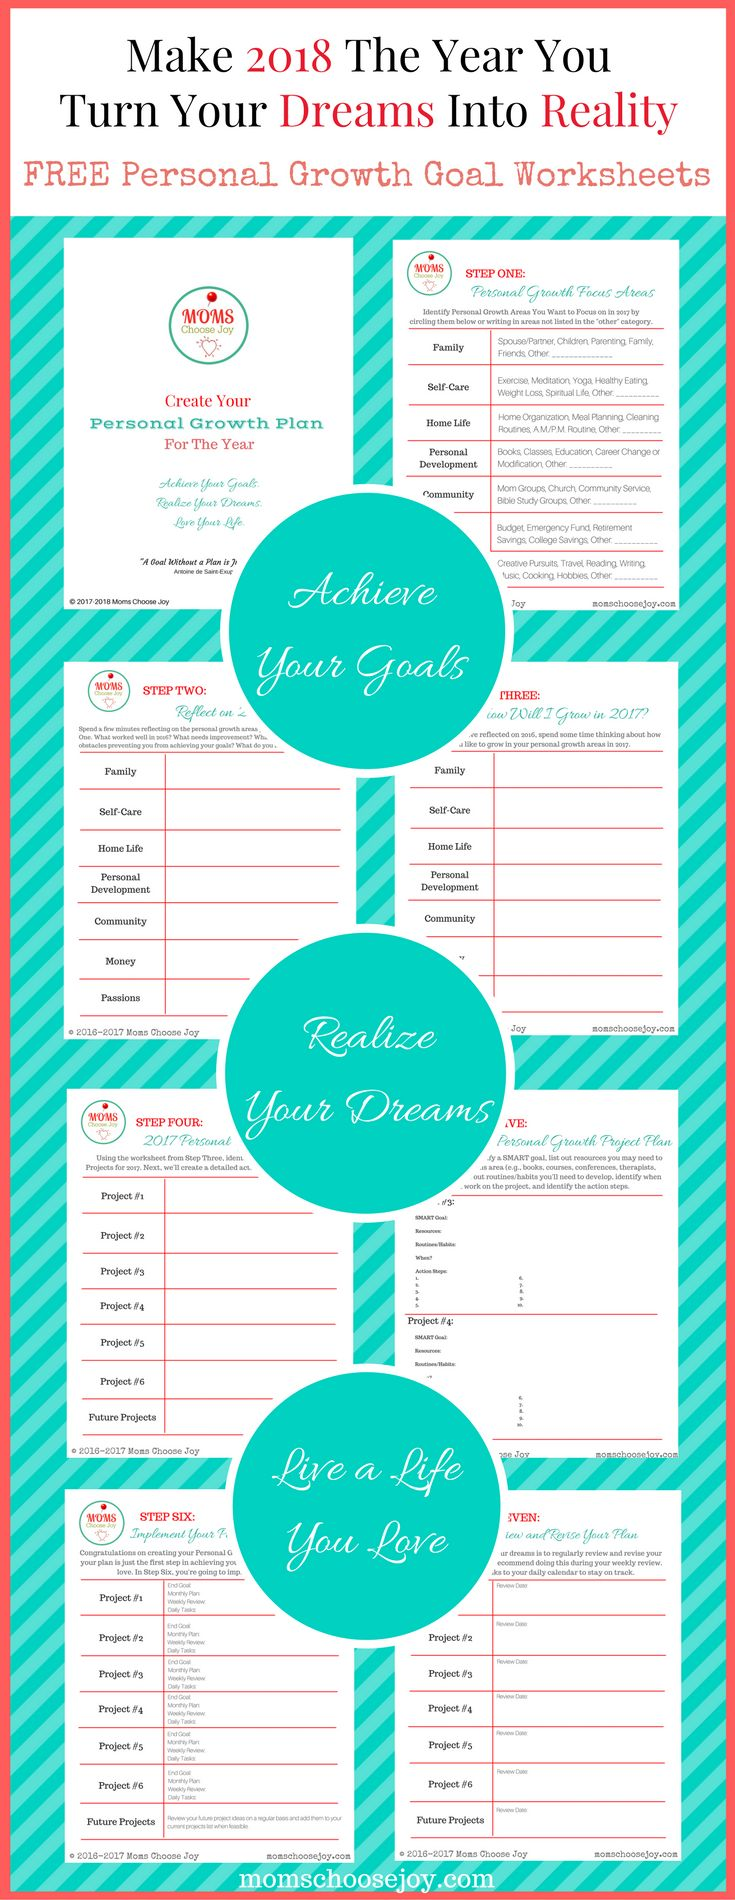 Set goals for 2018 for what matters most with this free 7-Step Personal Growth Goal Setting Worksheet printable designed with busy women in mind. It will show you how to make 2018 the year you achieve your goals, turn your dreams into reality, and live a life you love!